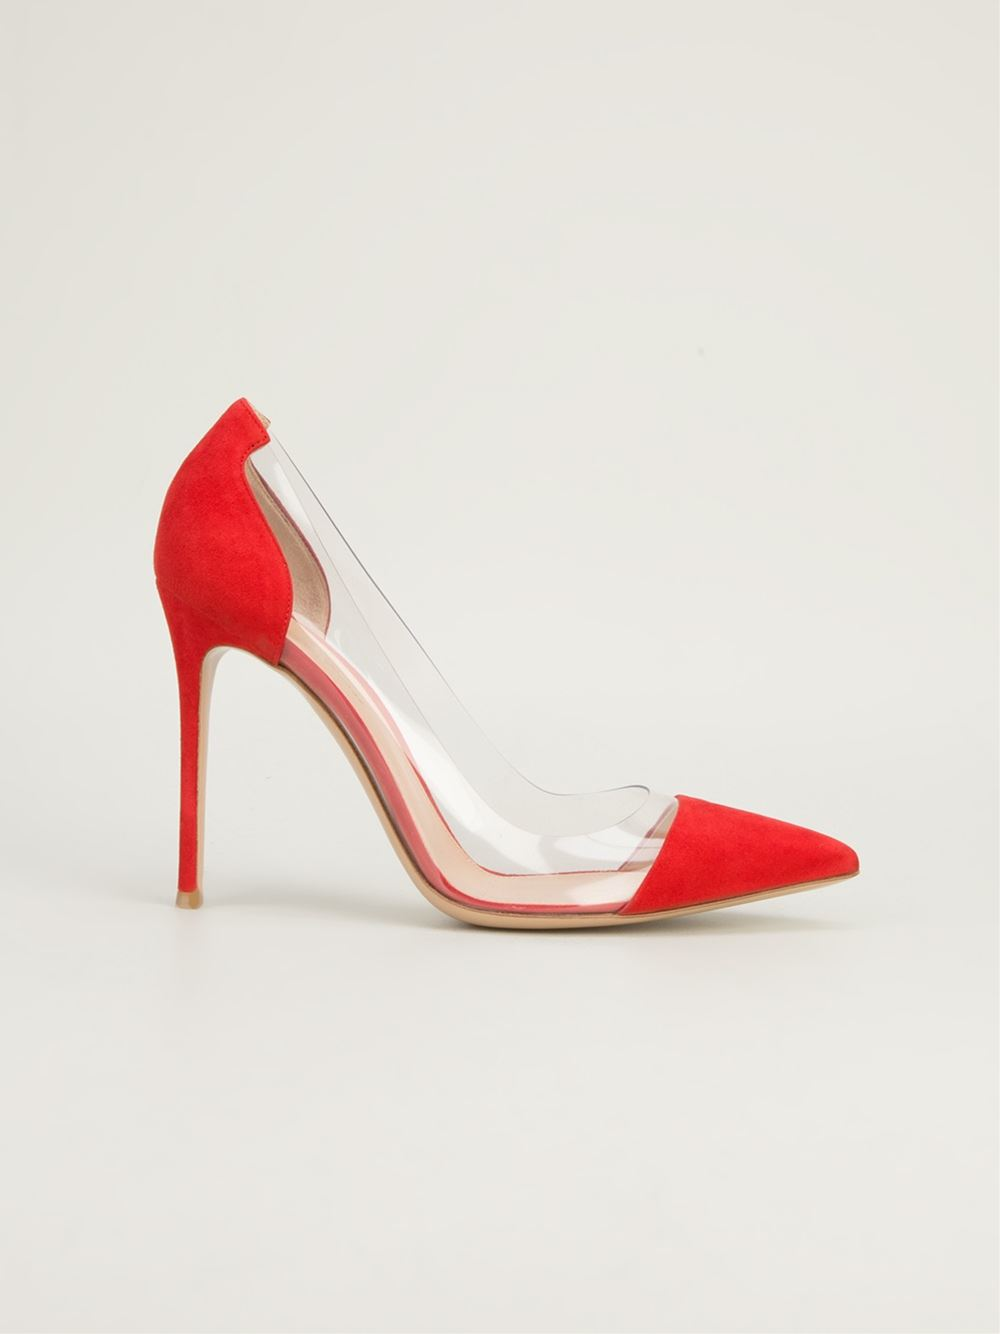 Gianvito Rossi Plexiglass Panel Pump - Biondini Paris - Farfetch.com